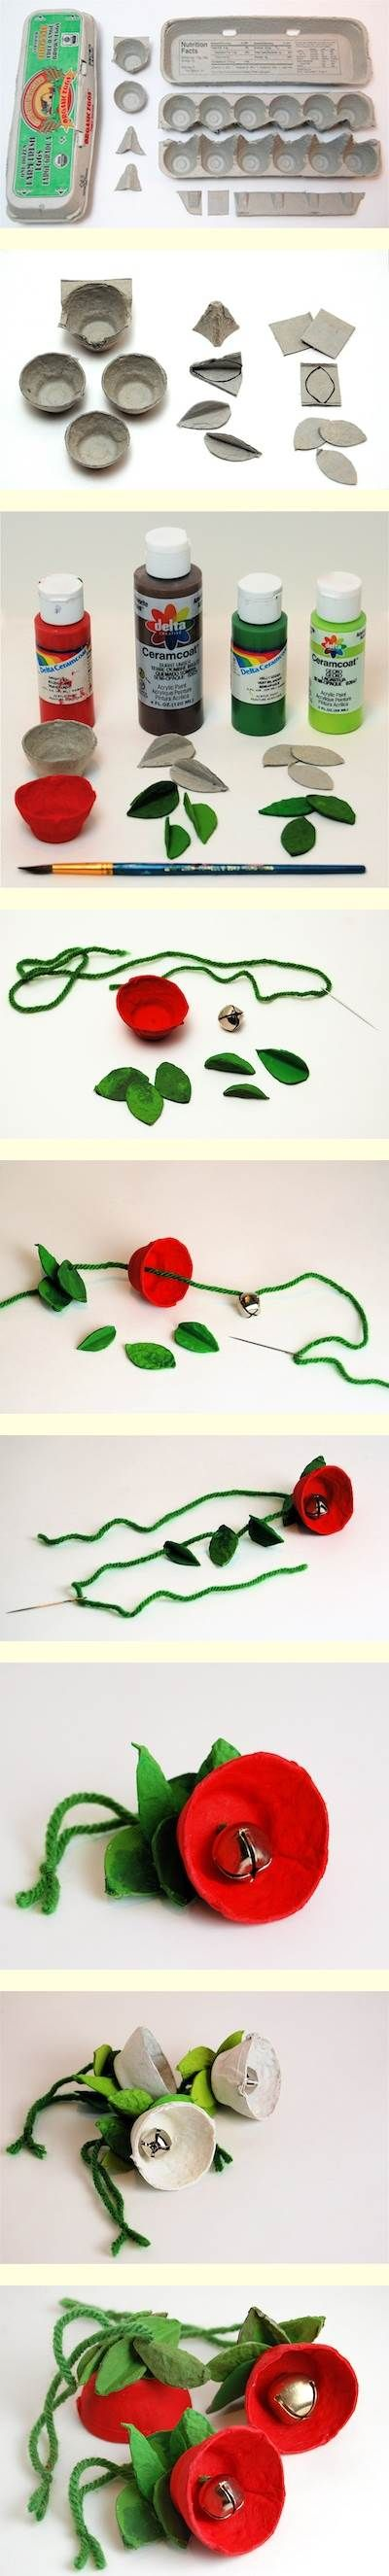 jingle bell flowers ornament